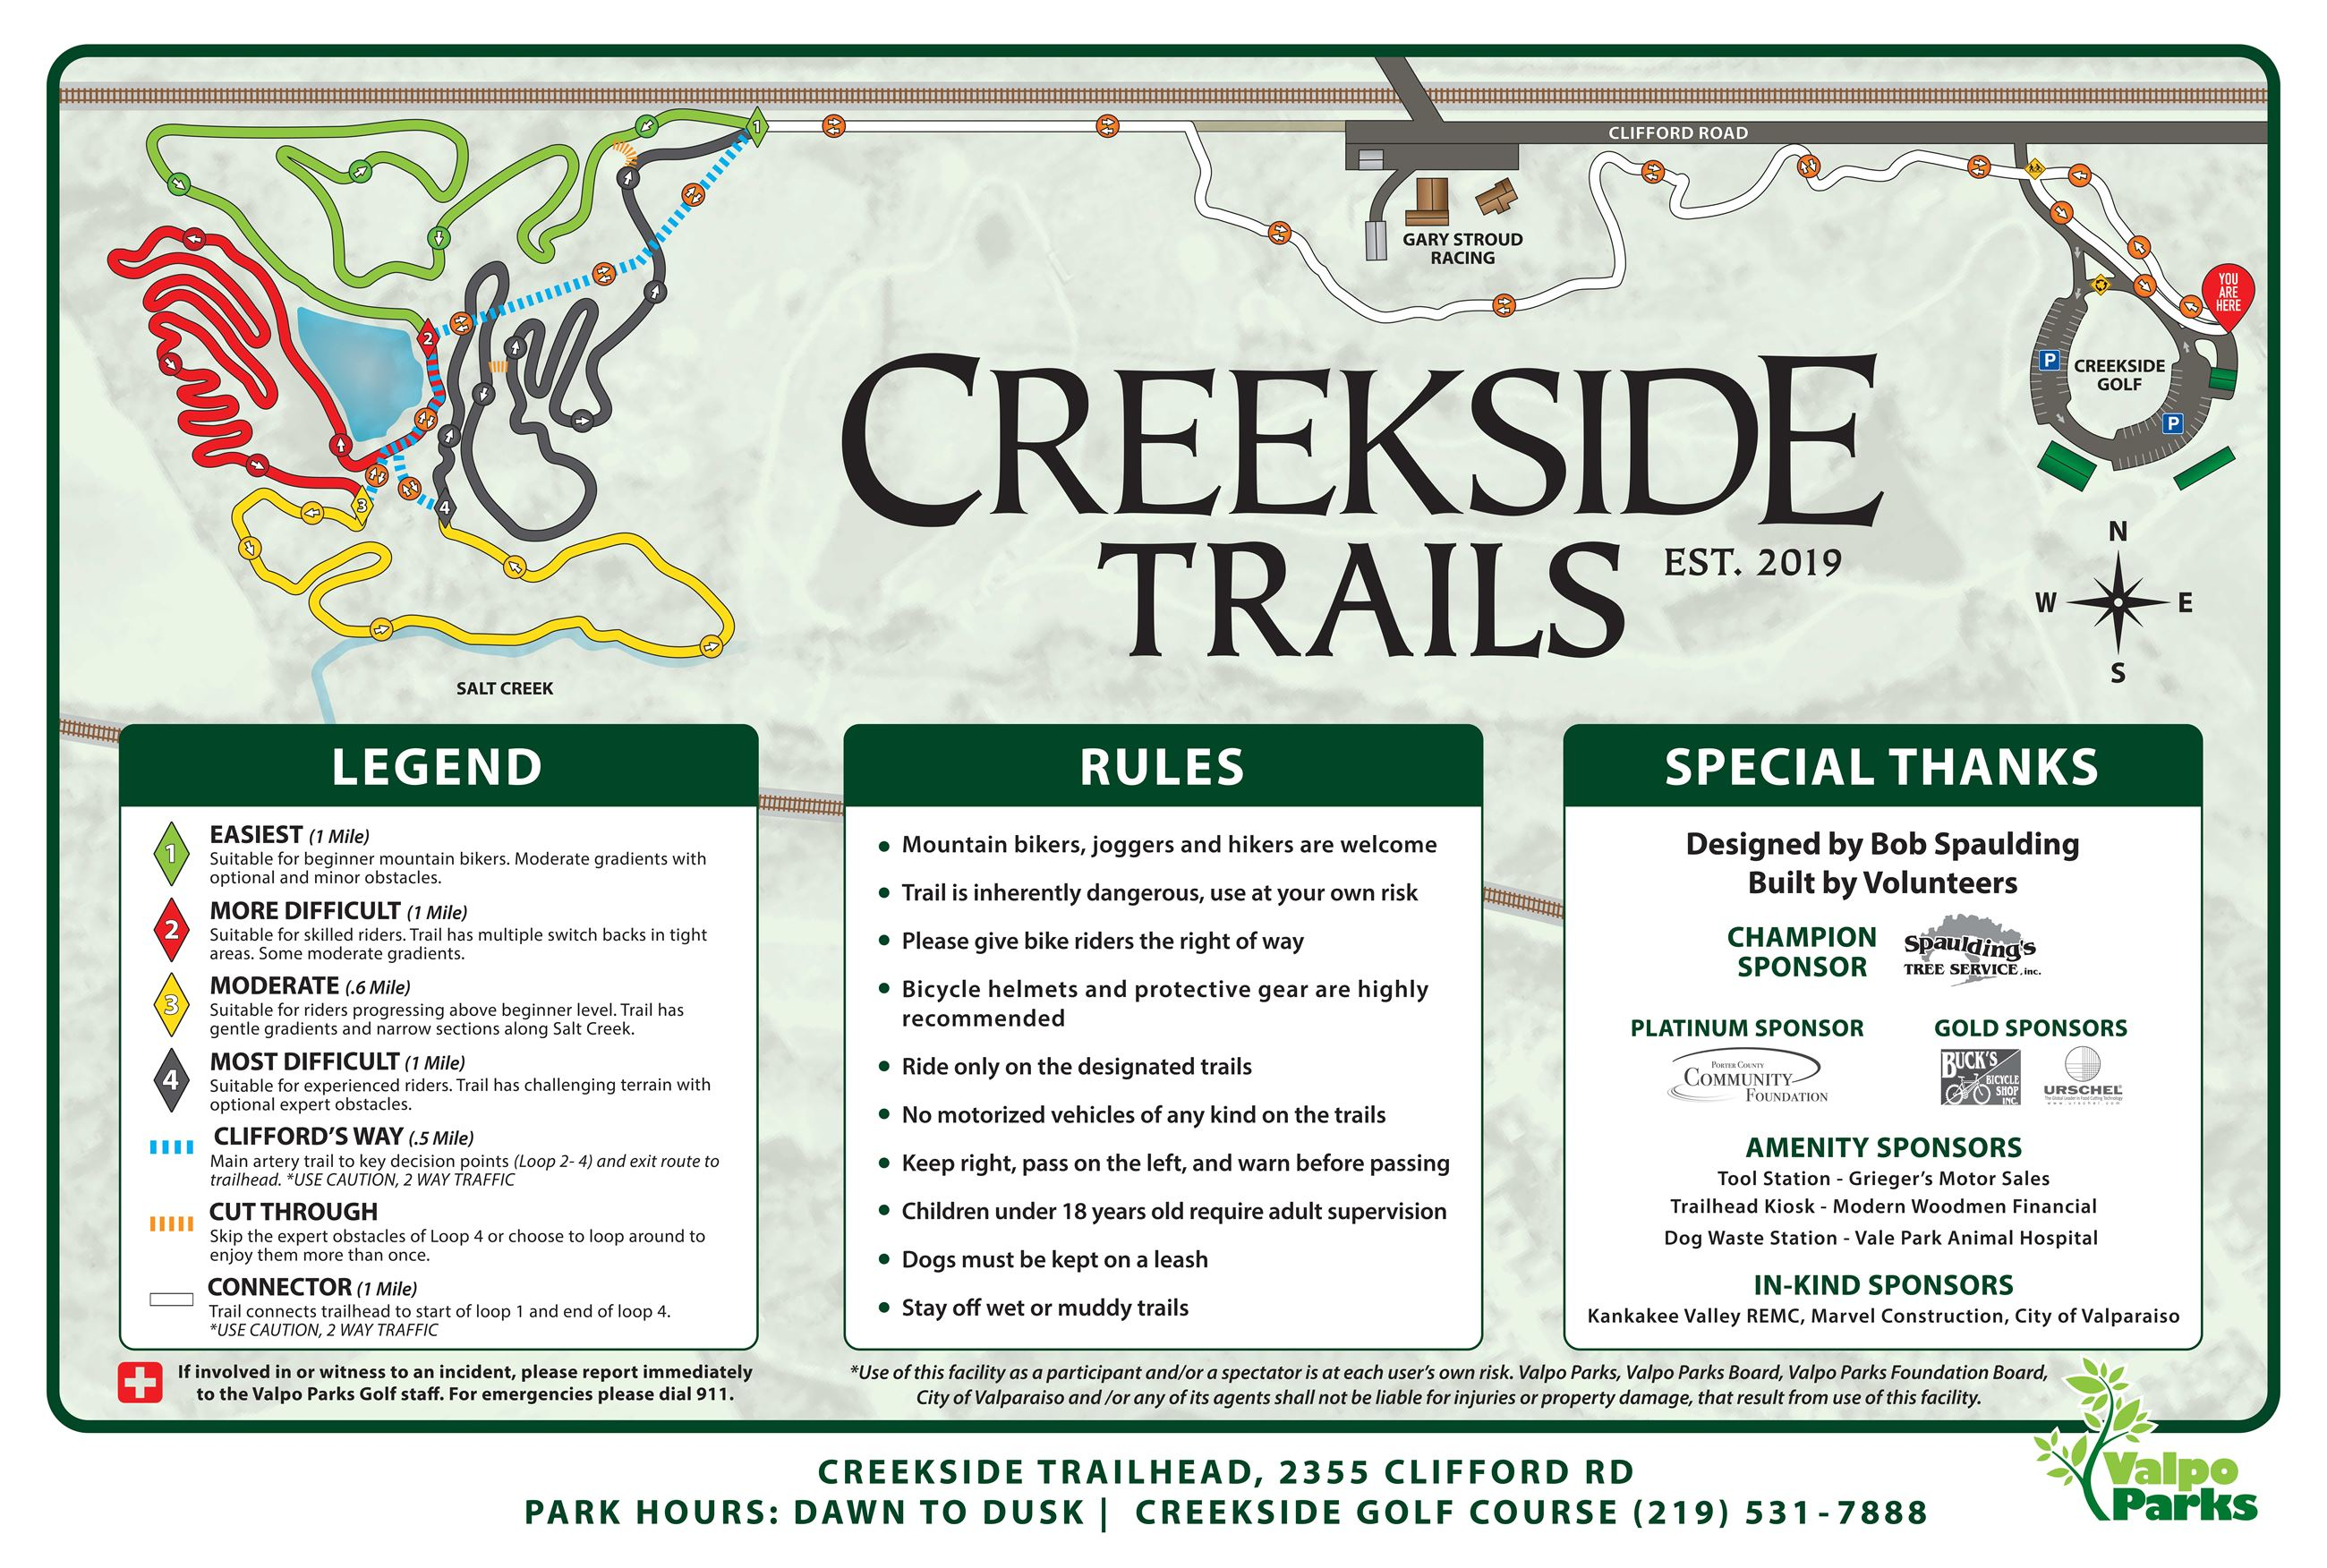 Creekside Trails Map